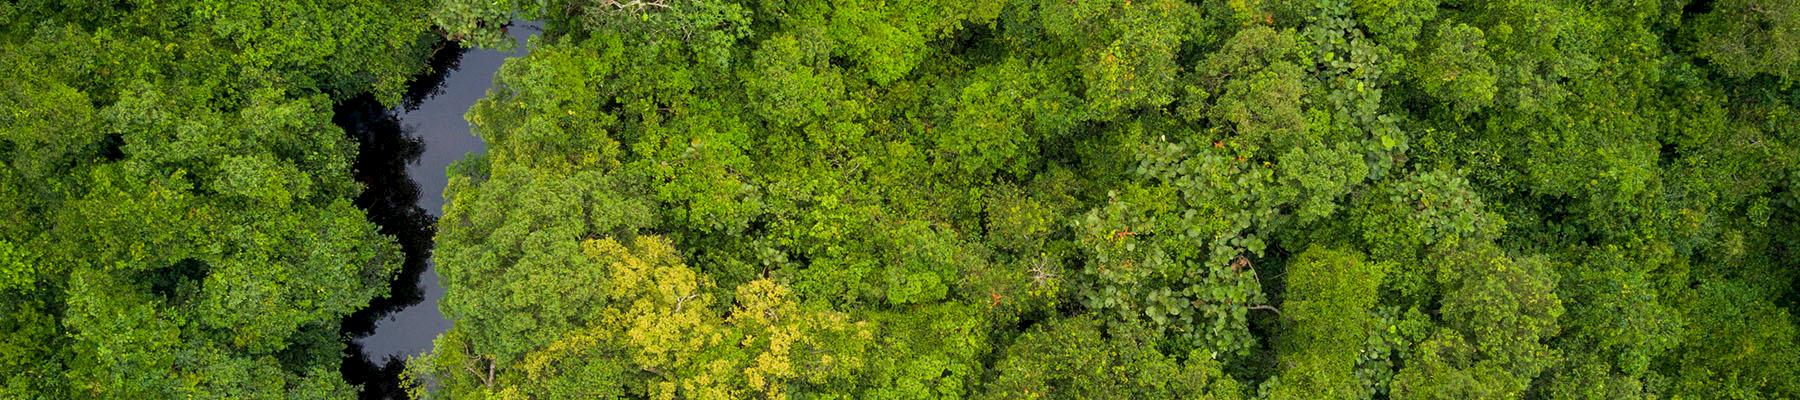 Aerial view of Salonga National Park, Democratic Republic of Congo © Thomas Nicolon / WWF DRC